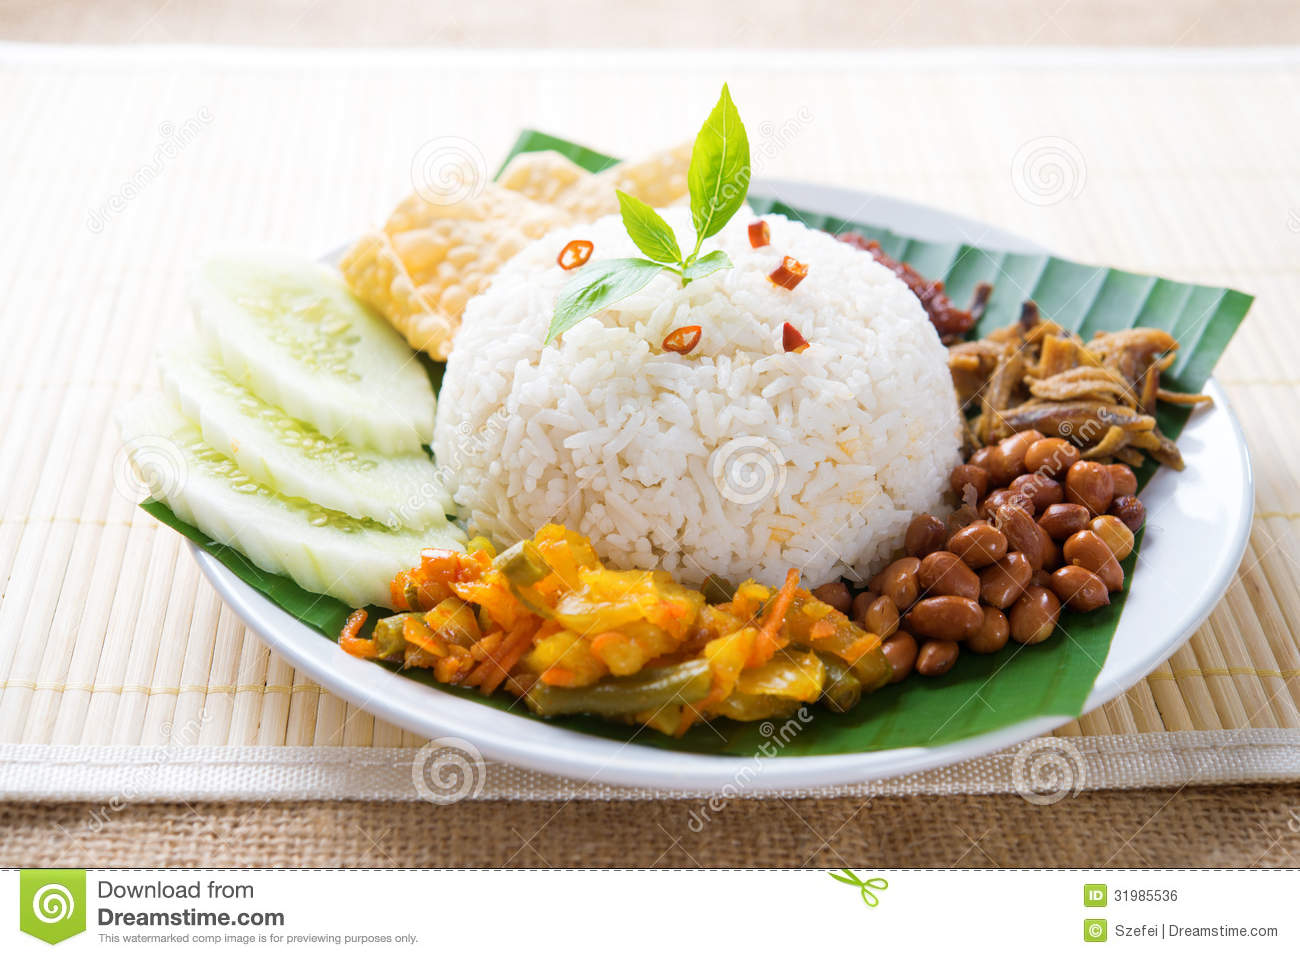 Nasi lemak, malay traditional rice meal.